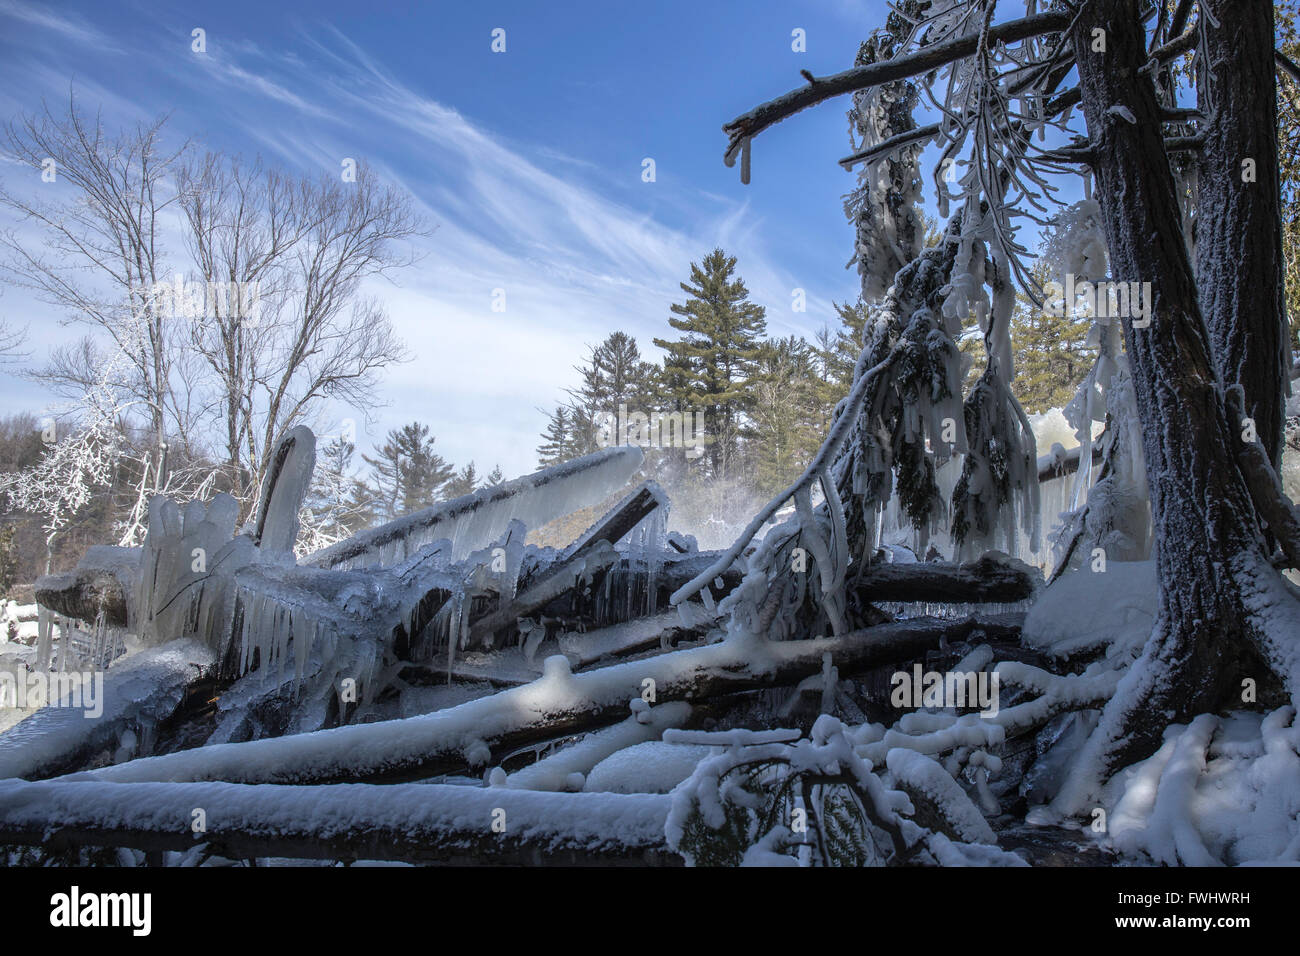 Barricade  of ice covered logs - Stock Image